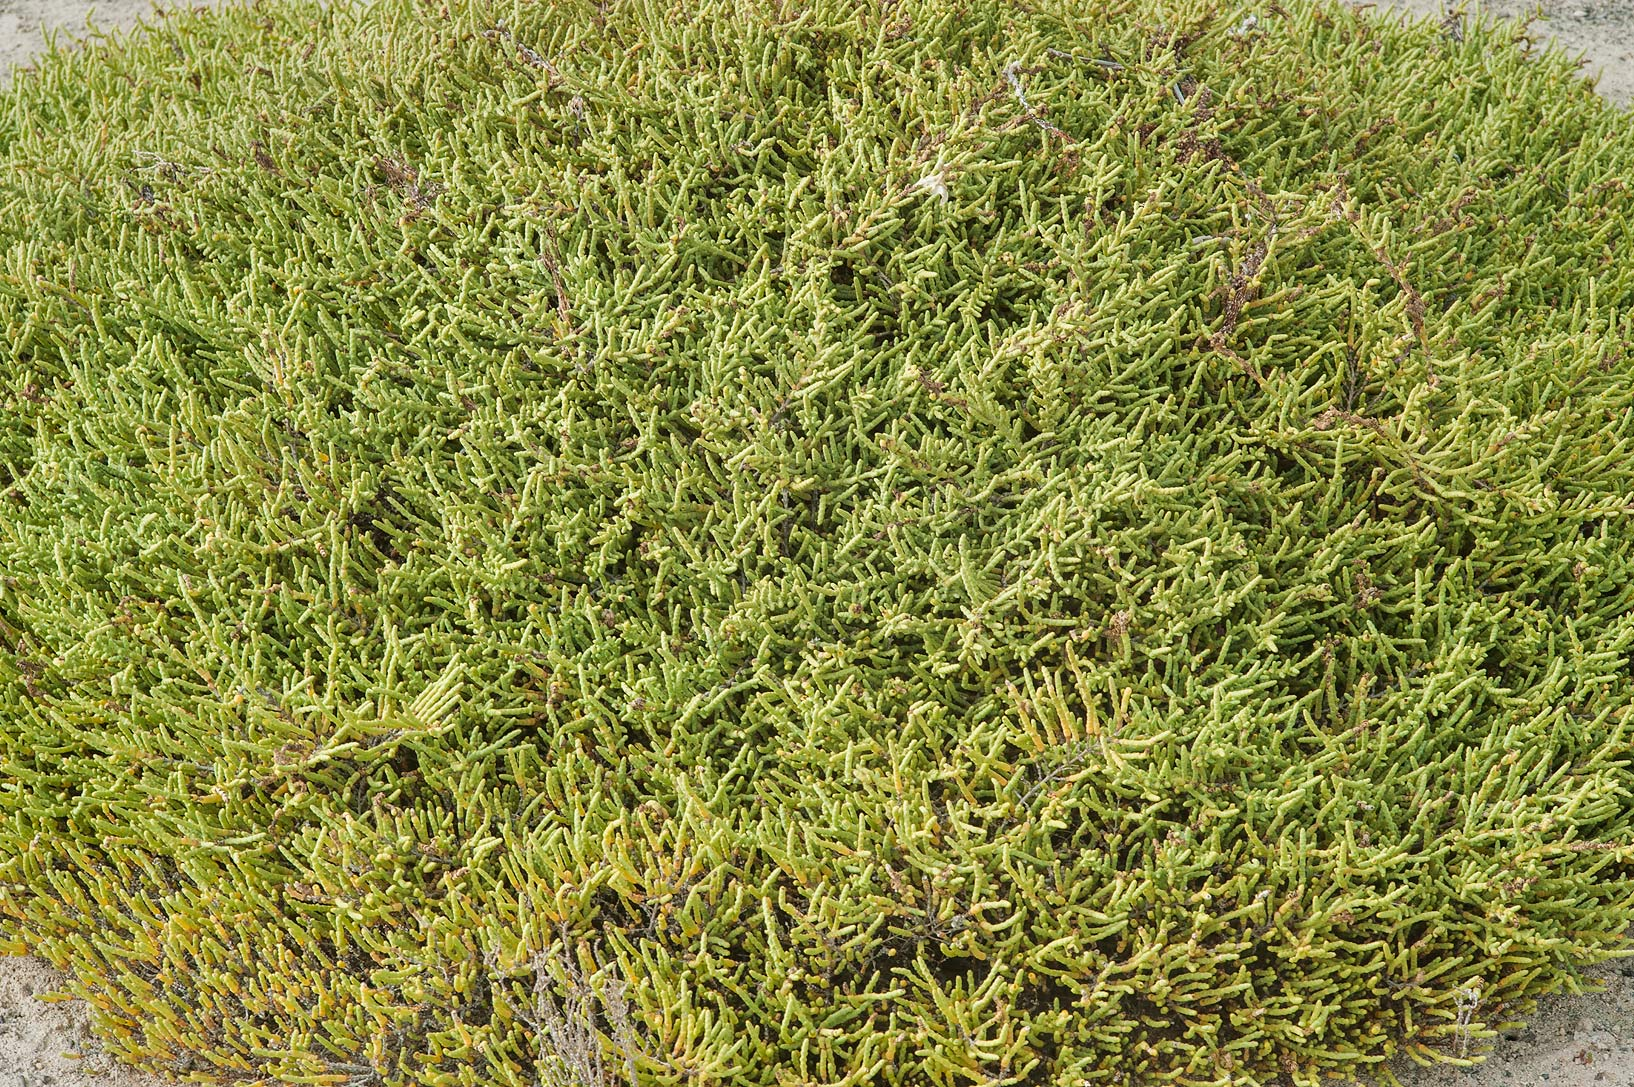 Glasswort (Arthrocnemum macrostachyum) on Umm Tays Island in Madinat Al Shamal area. Qatar